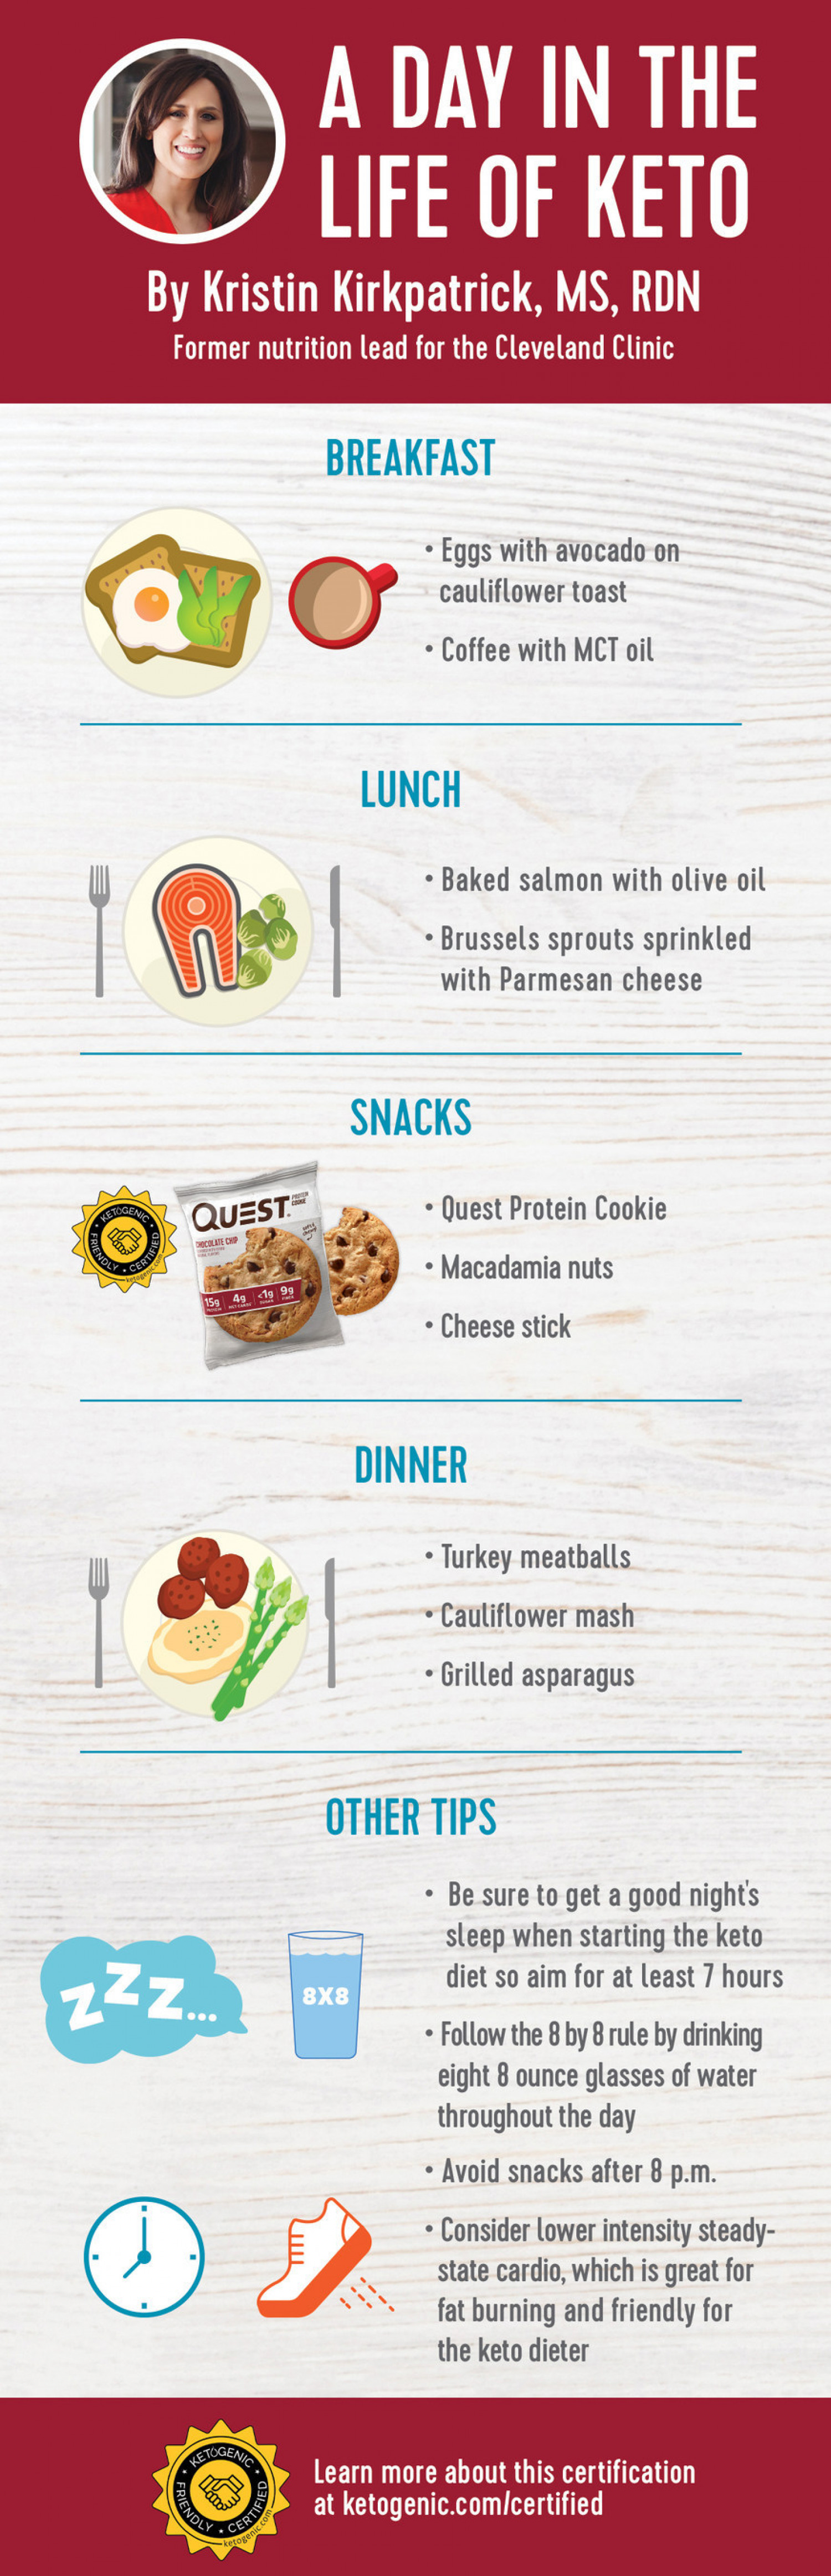 A Complete Guide To Understanding The Ketogenic Diet - Daily Infographic